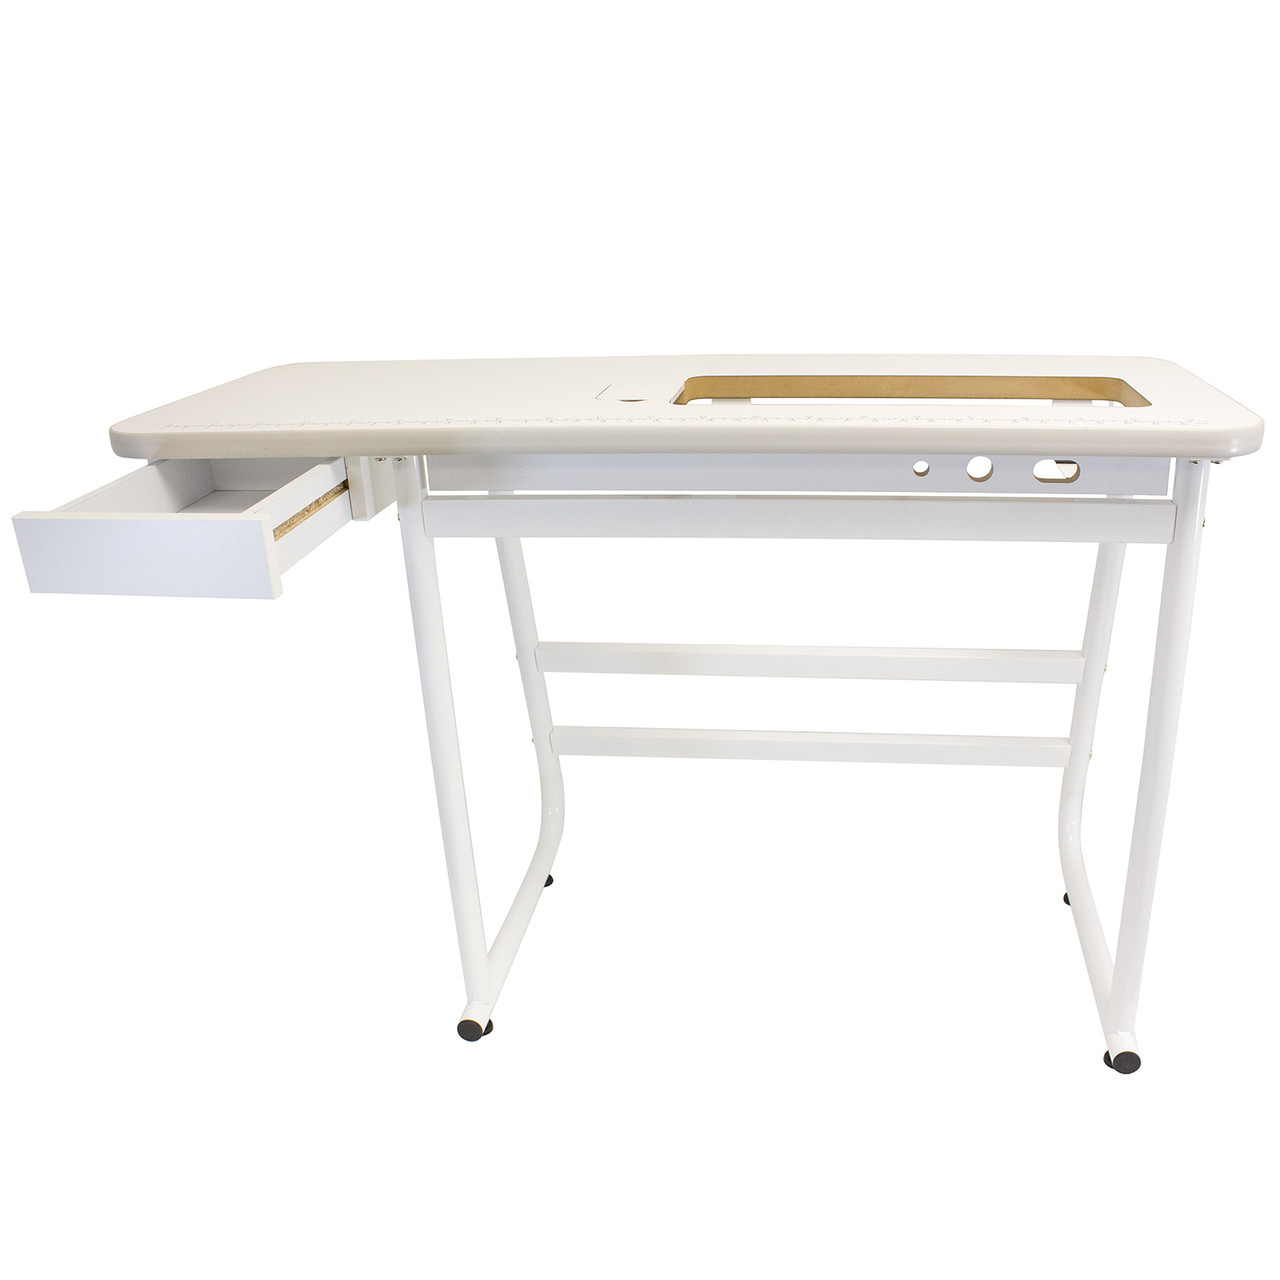 Janome Sewing Table For Mid Arm High Speed Machines 9